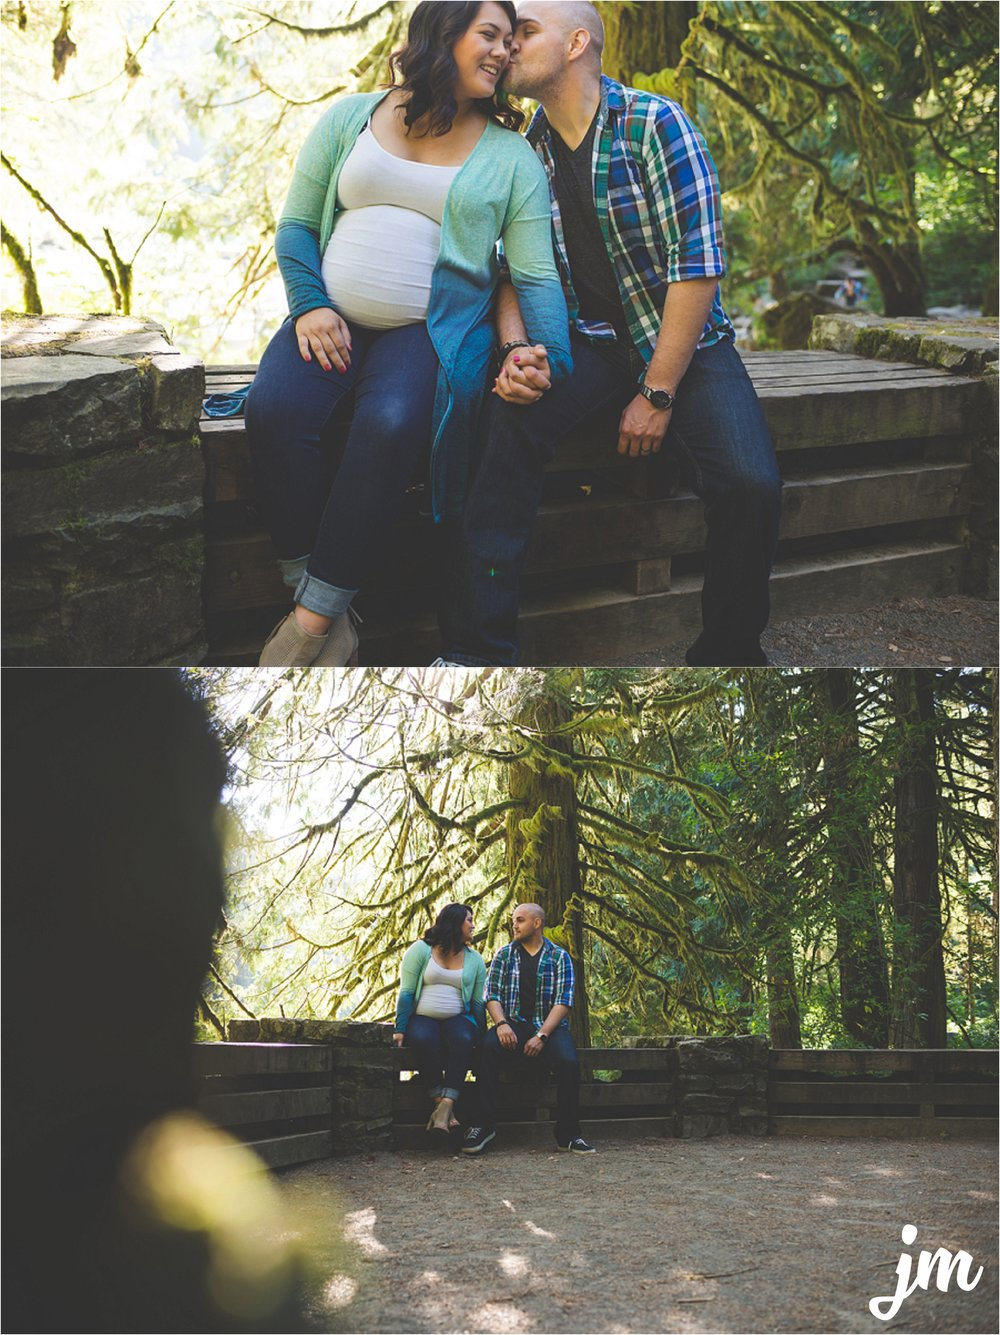 jannicka-mayte-moulton-falls-park-maternity-session-pacific-northwest-lifestyle-photographer_0003.jpg